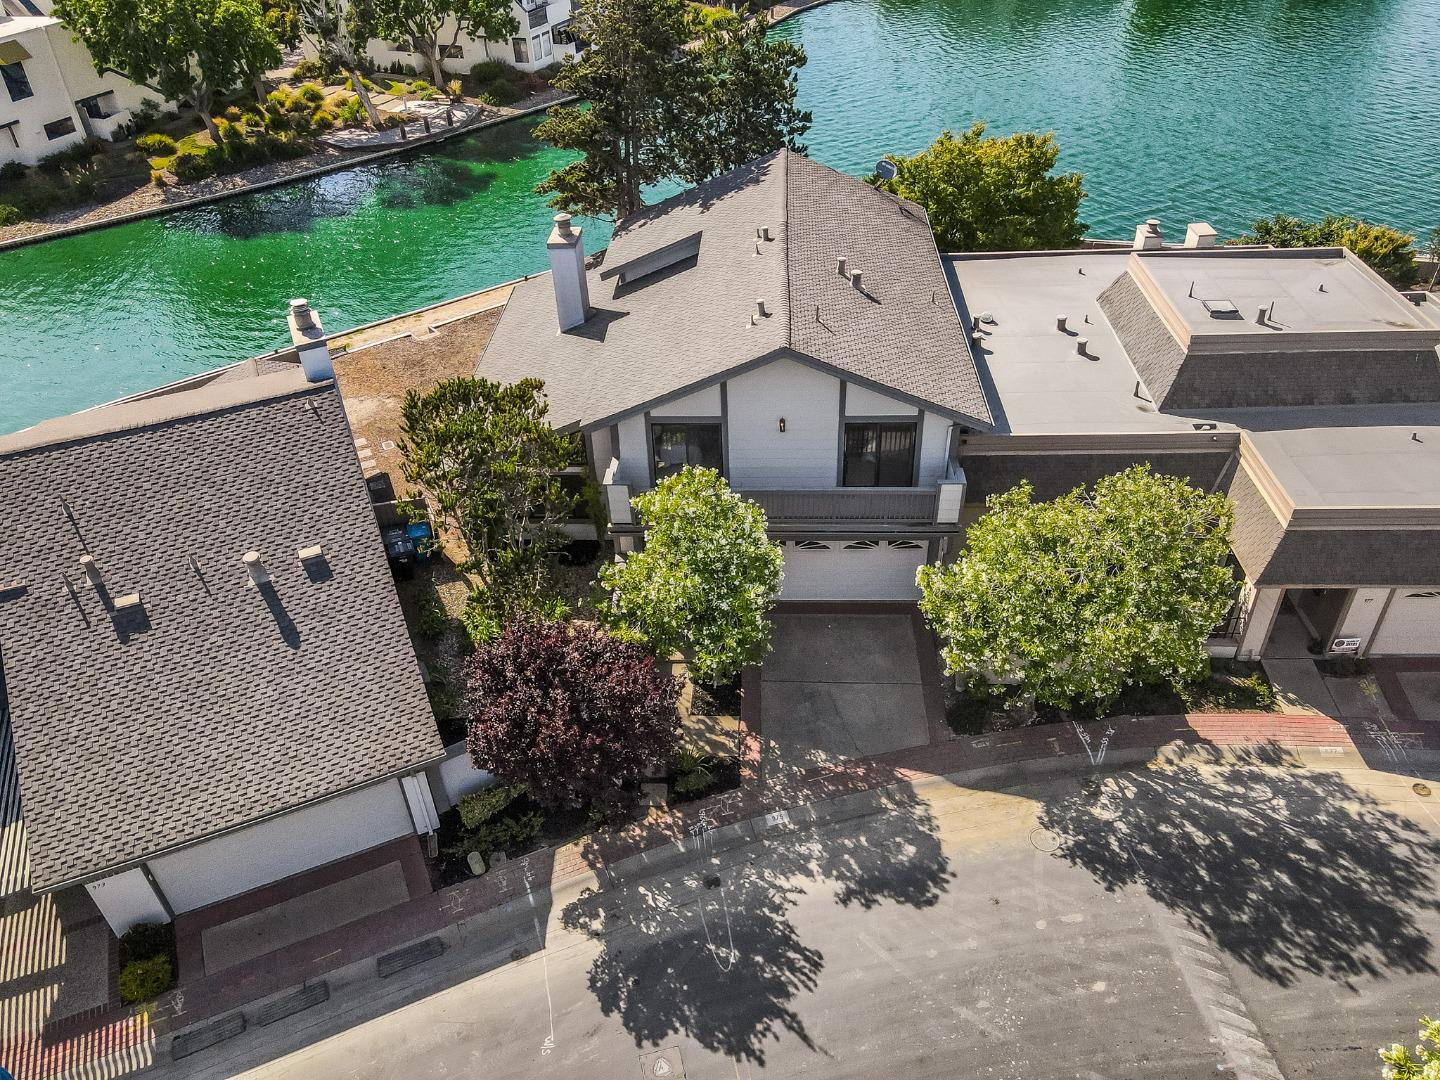 Welcome home to this incredible 4bd/2.5ba waterfront gem located in the heart of beautiful Foster City in the quiet and well-maintained Bayporte Community. With 2760 sq ft of living space, this bright and spacious home boasts vaulted ceilings in the living room and primary suite, formal dining, and gorgeous views of the water.  Water views can be seen from the living room, dining room, kitchen, family room, 1st bedroom and the primary suite which has a its own private deck that overlooks the backyard and water.  The 2nd and 3rd bedrooms share a balcony off the front of the home.  Fresh paint and new carpets make this home move-in ready.  Enjoy great Foster City schools, bike/jogging trails, water sports on the lagoons, and community parks.  Centrally located between SF and Silicon Valley, near Hwy 92 and 101 w/ connections for all commute directions. Bayporte Community Association has access to two community pools, a community play area & beautifully landscaped common areas.